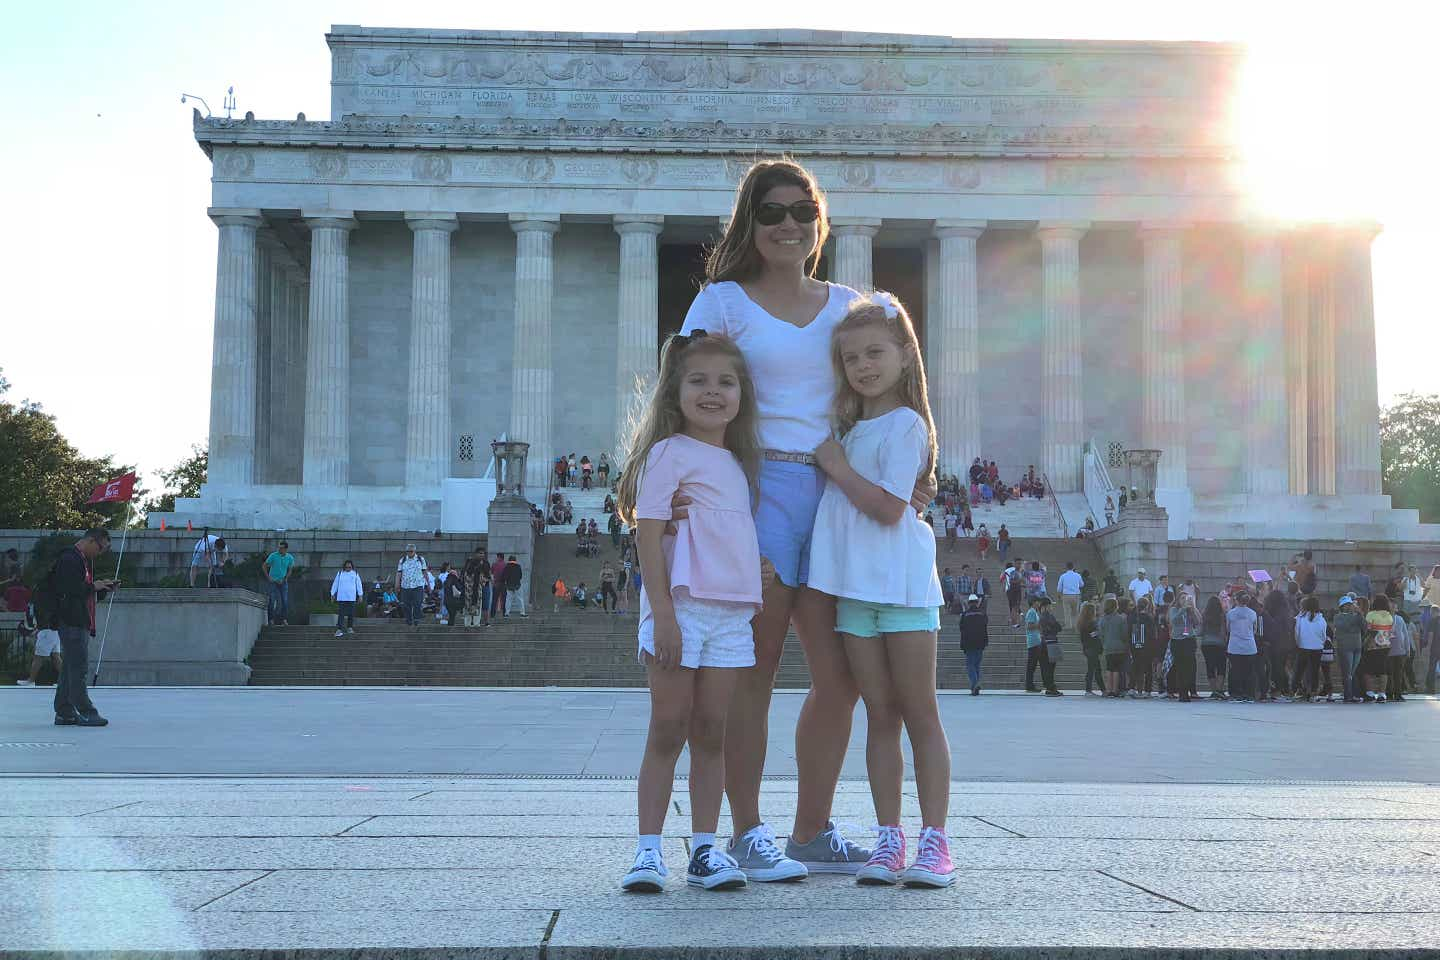 Author, Chris Johnston (middle), stands in front of the Lincoln Memorial in Washington DC with her daughters Kyndall (right) and Kyler (left).